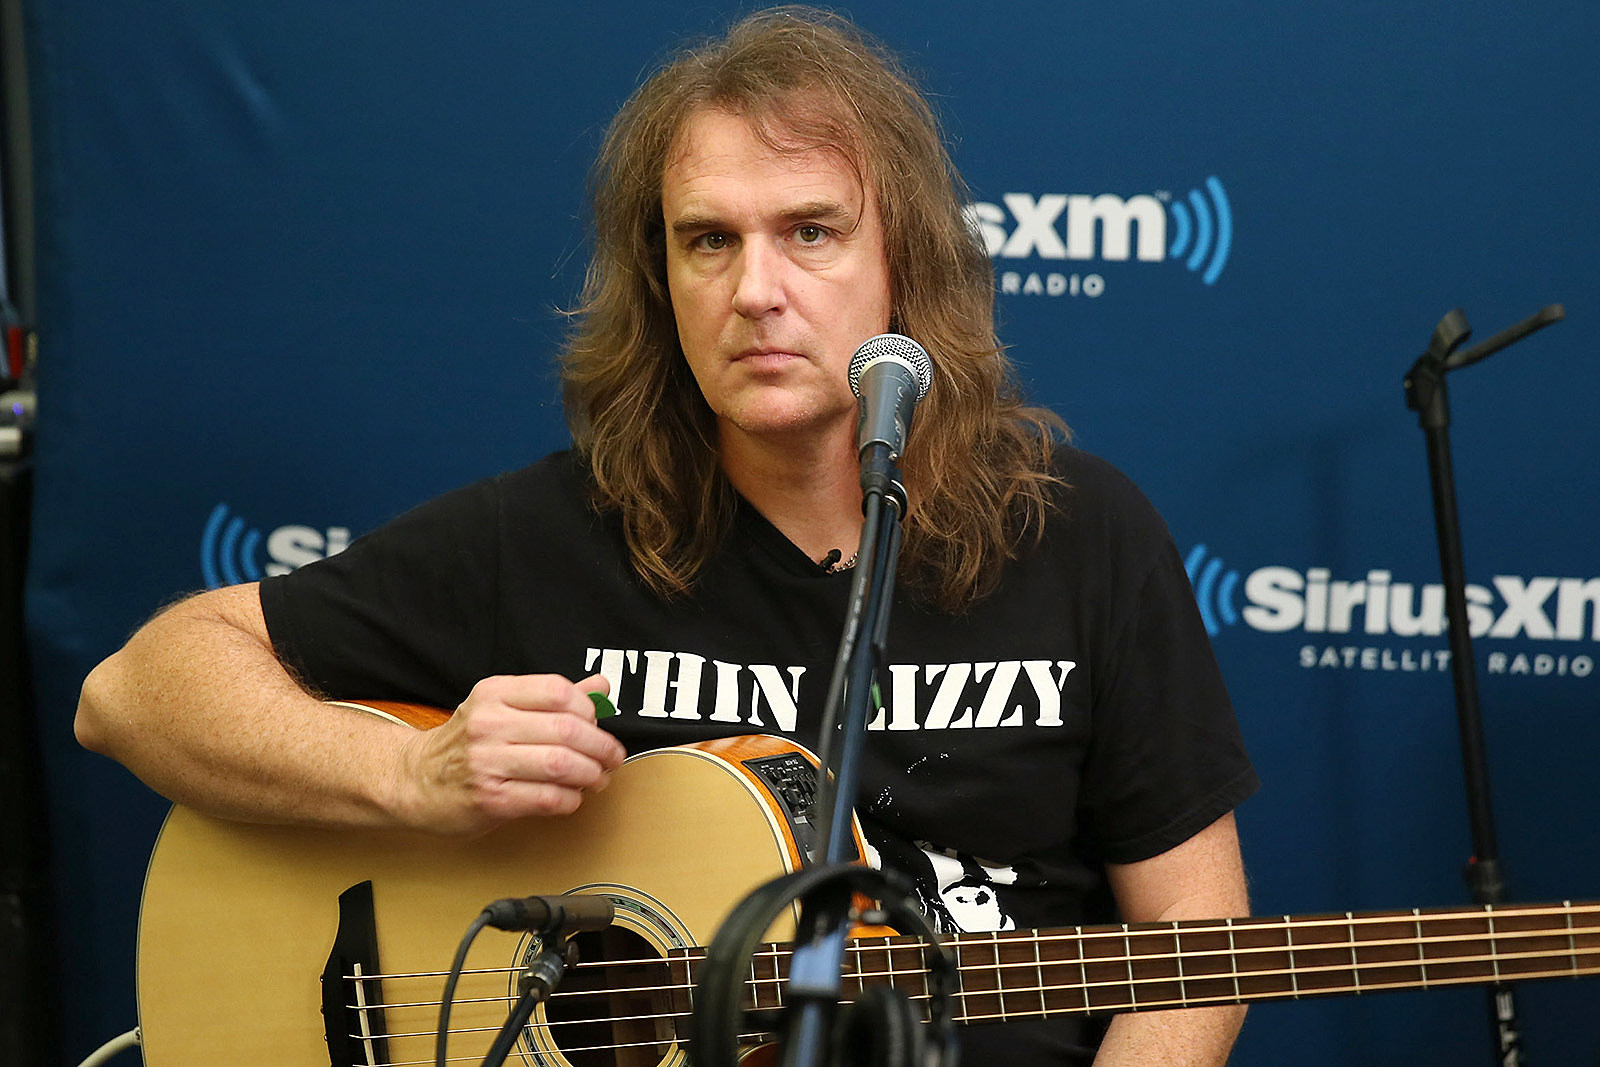 Megadeth to Remove David Ellefson's Bass Tracks from Upcoming LP